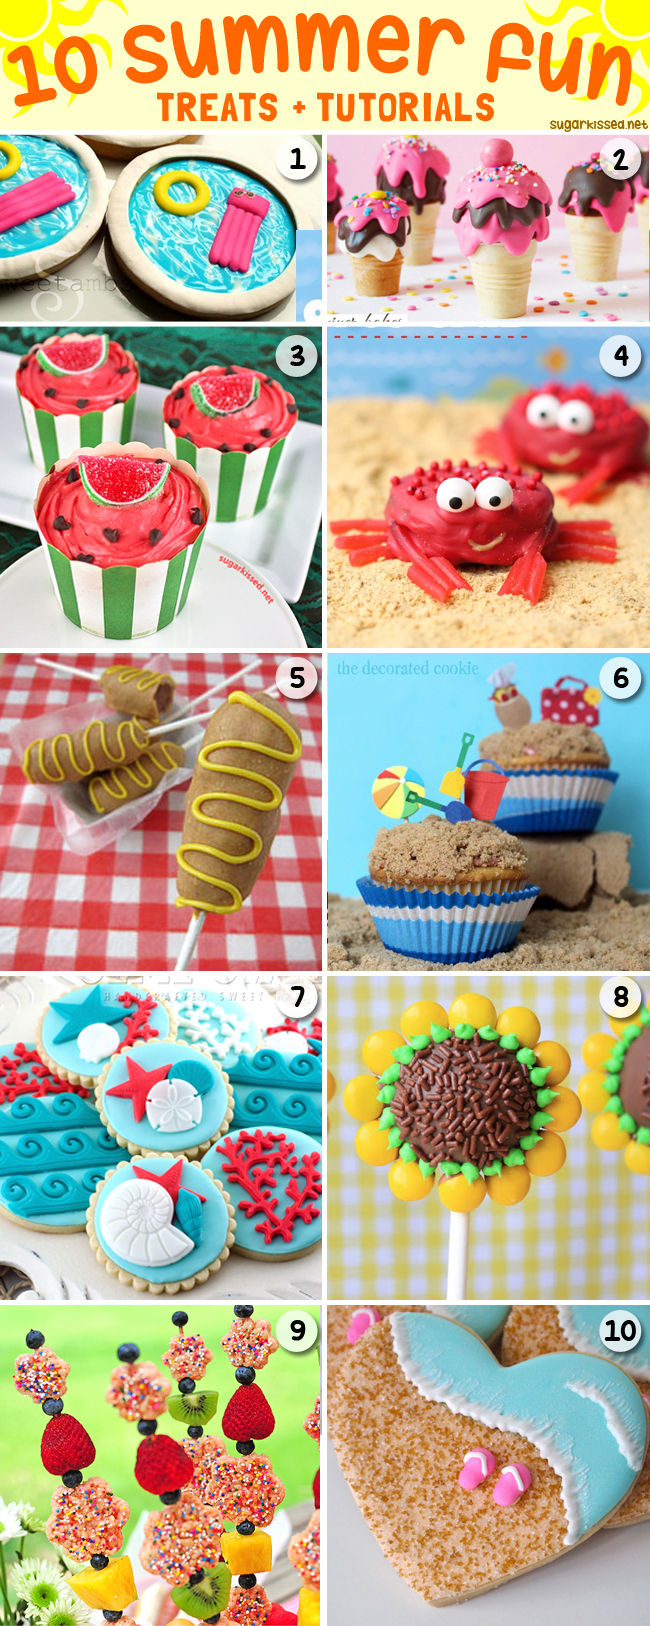 10 Summer Fun Treats with Tutorials at sugarkissed.net